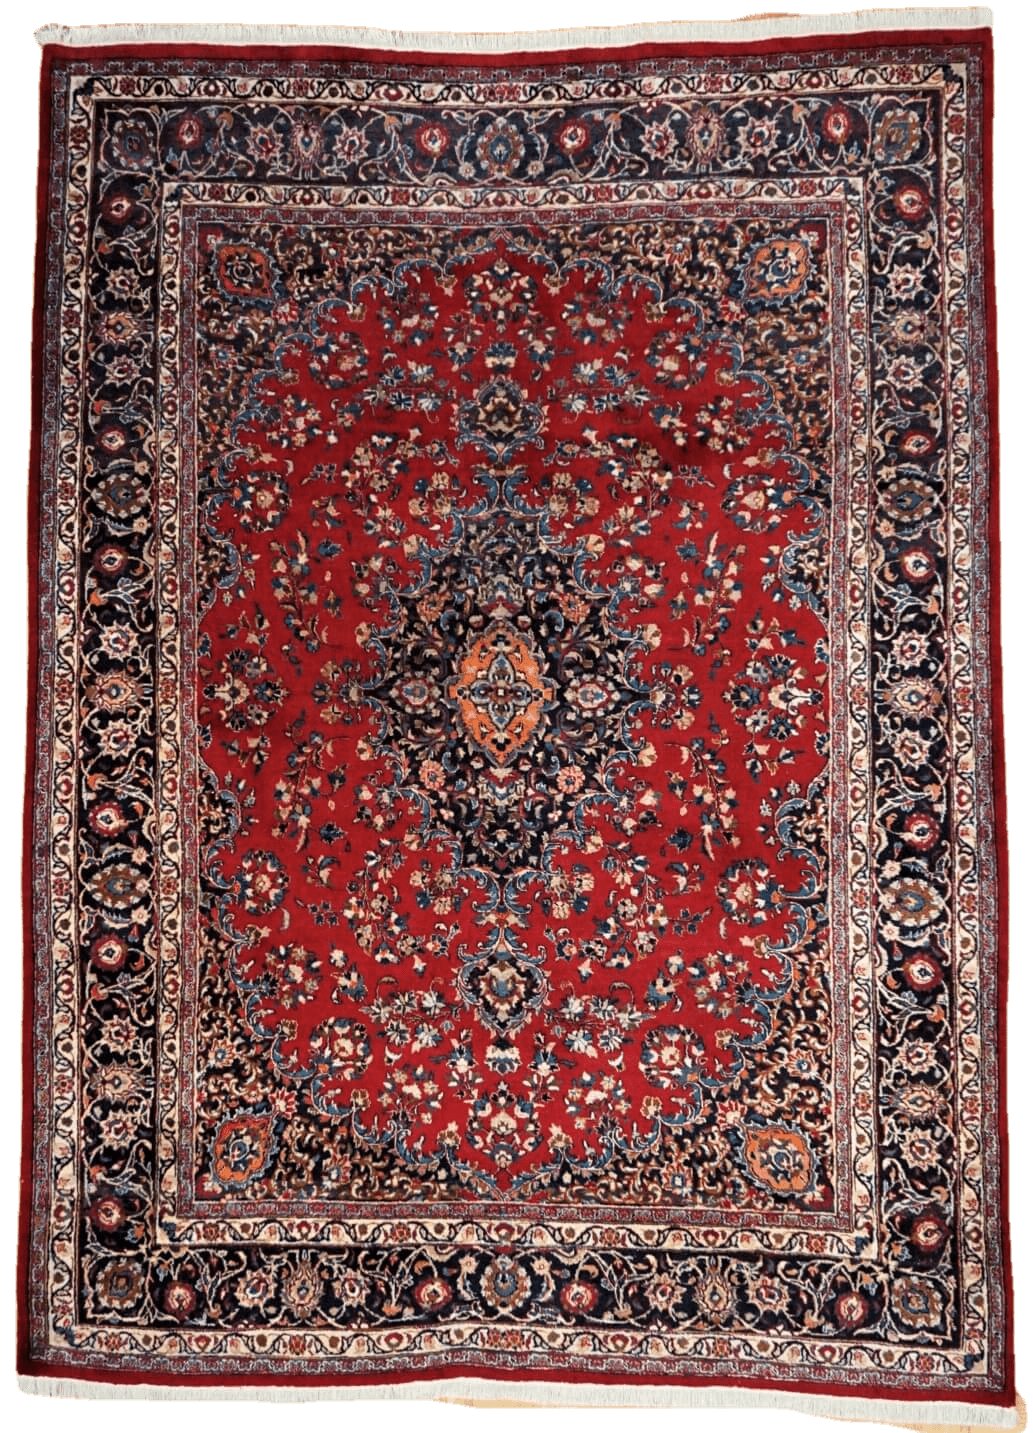 Persia (Iran) Mashad Rug - Solomon's Collection & Fine Rugs